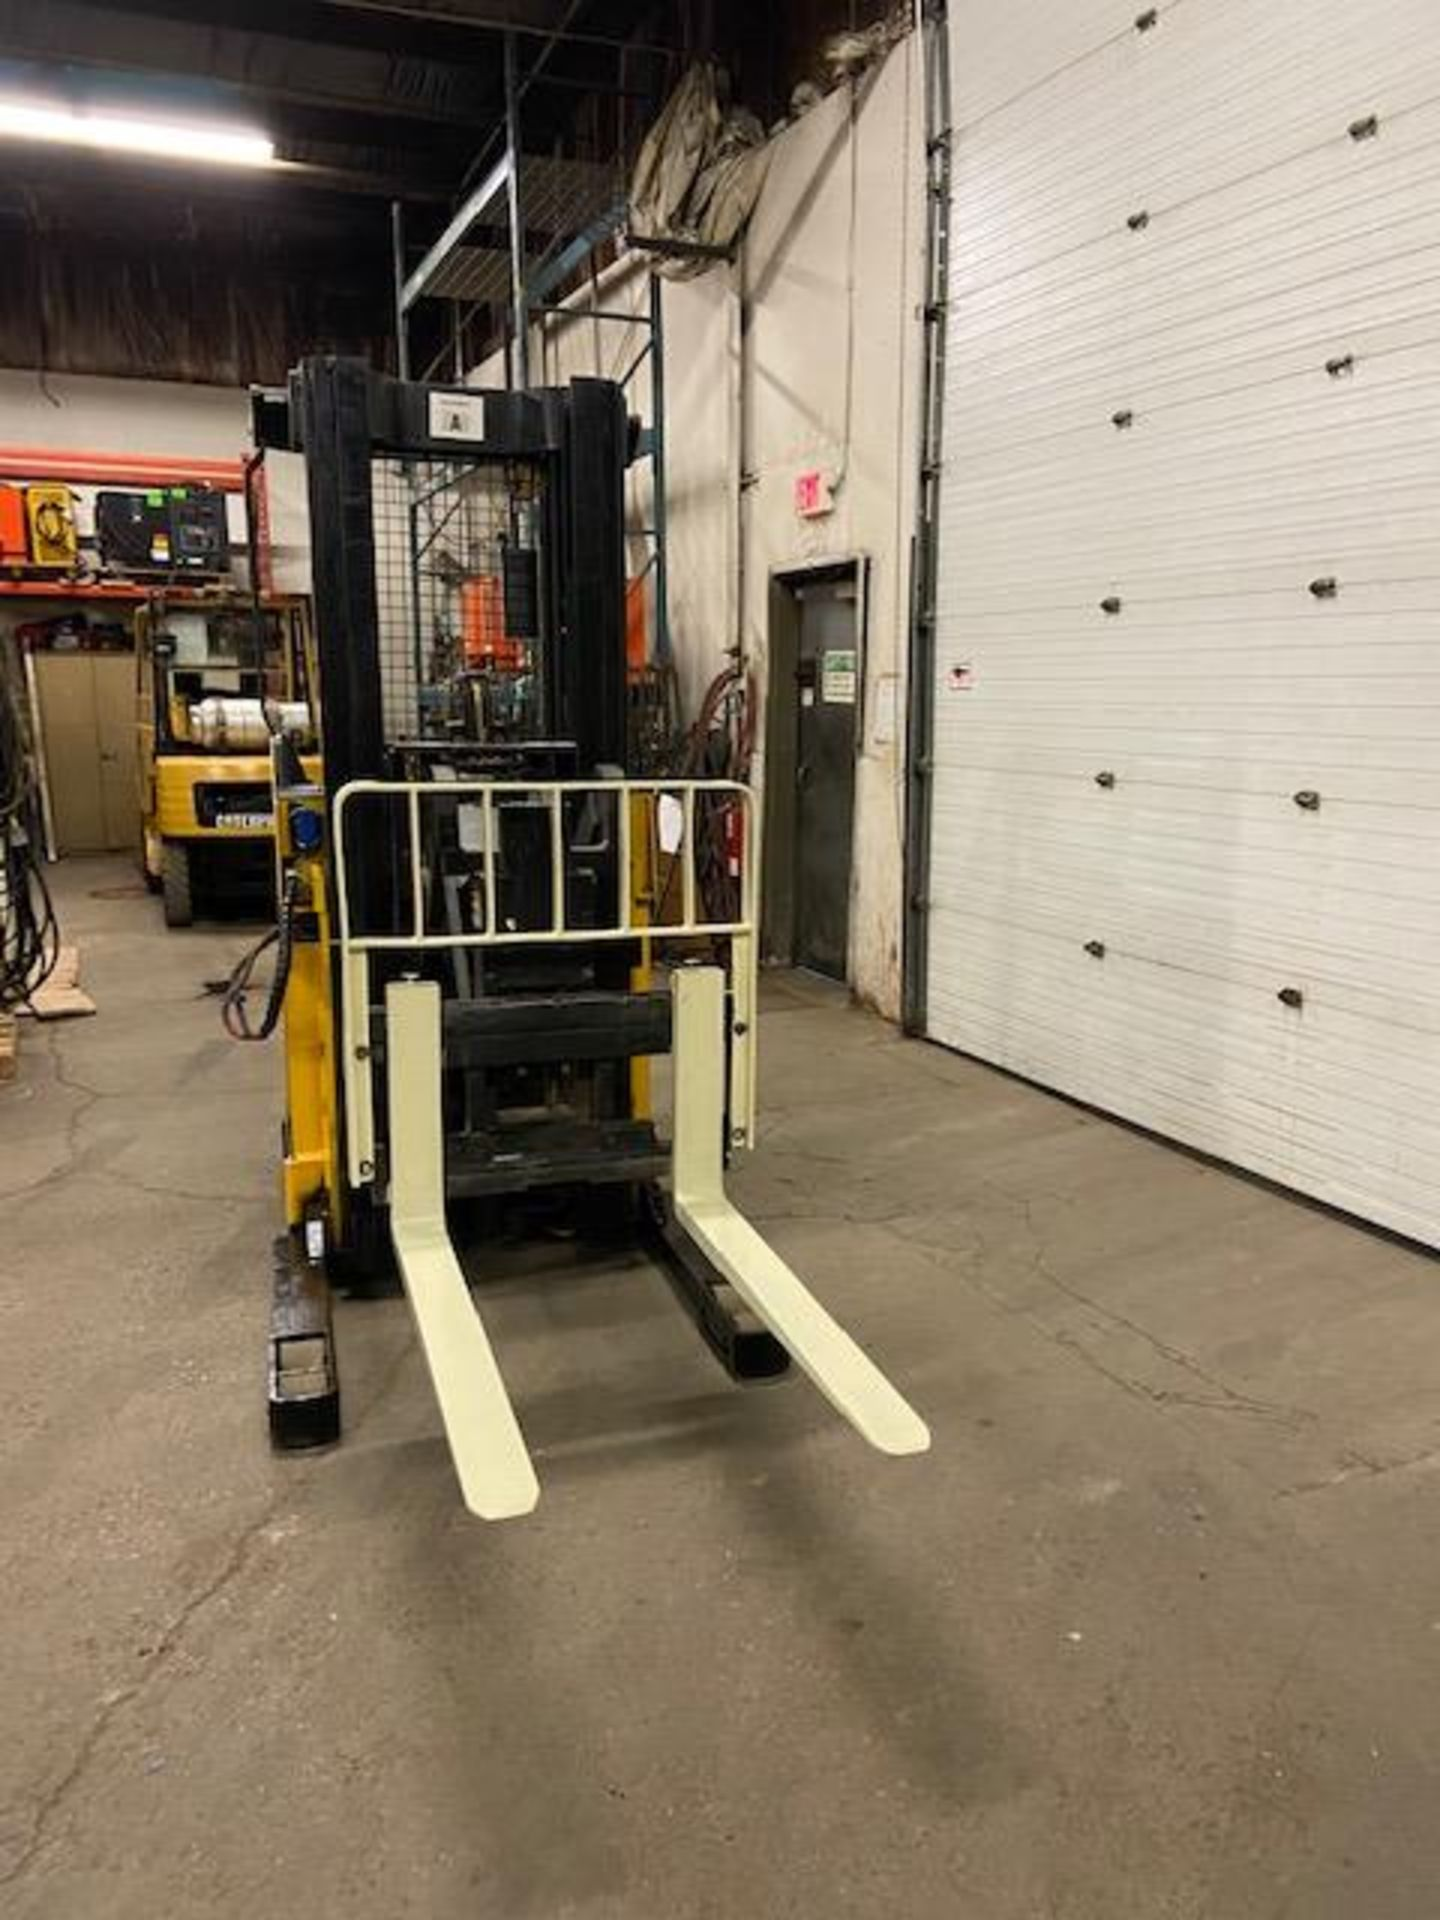 FREE CUSTOMS - Yale Reach Truck Pallet Lifter REACH TRUCK electric 4000lbswith sideshift 3stage mast - Image 2 of 3